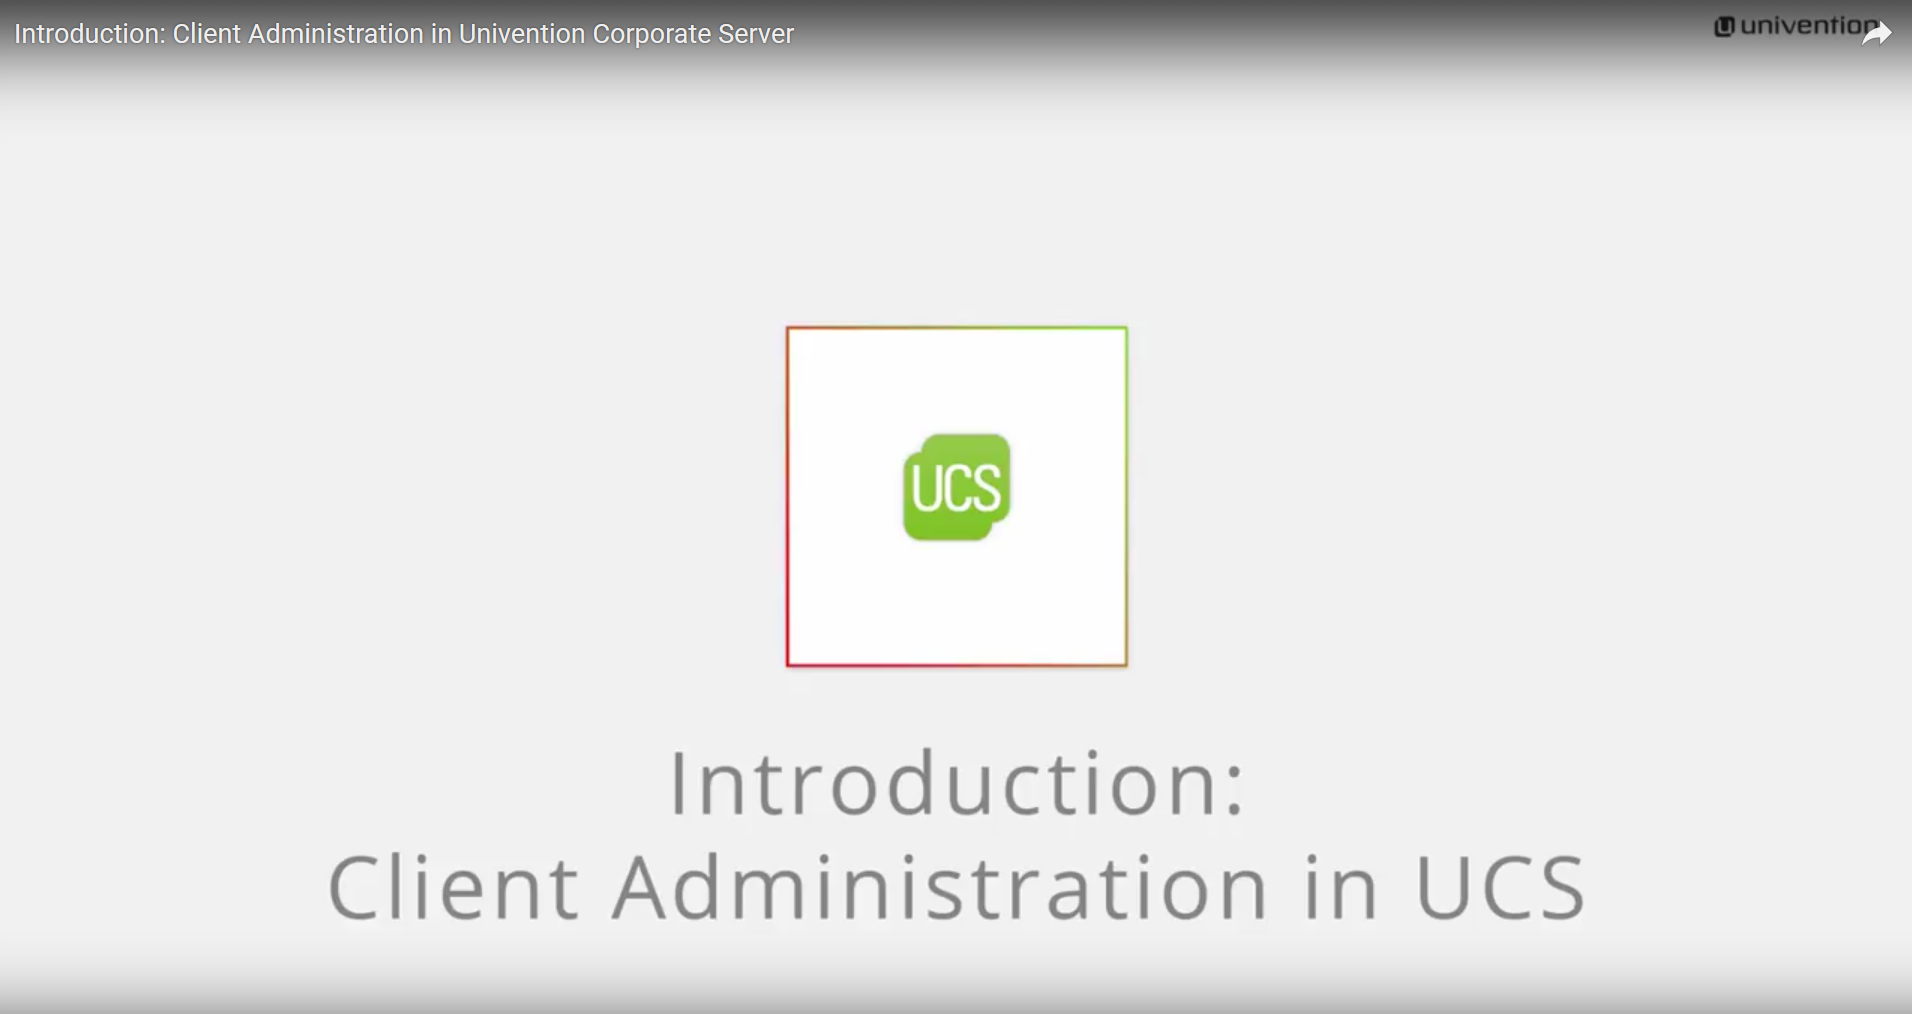 Video_WindowsClient_in_UCSDomain